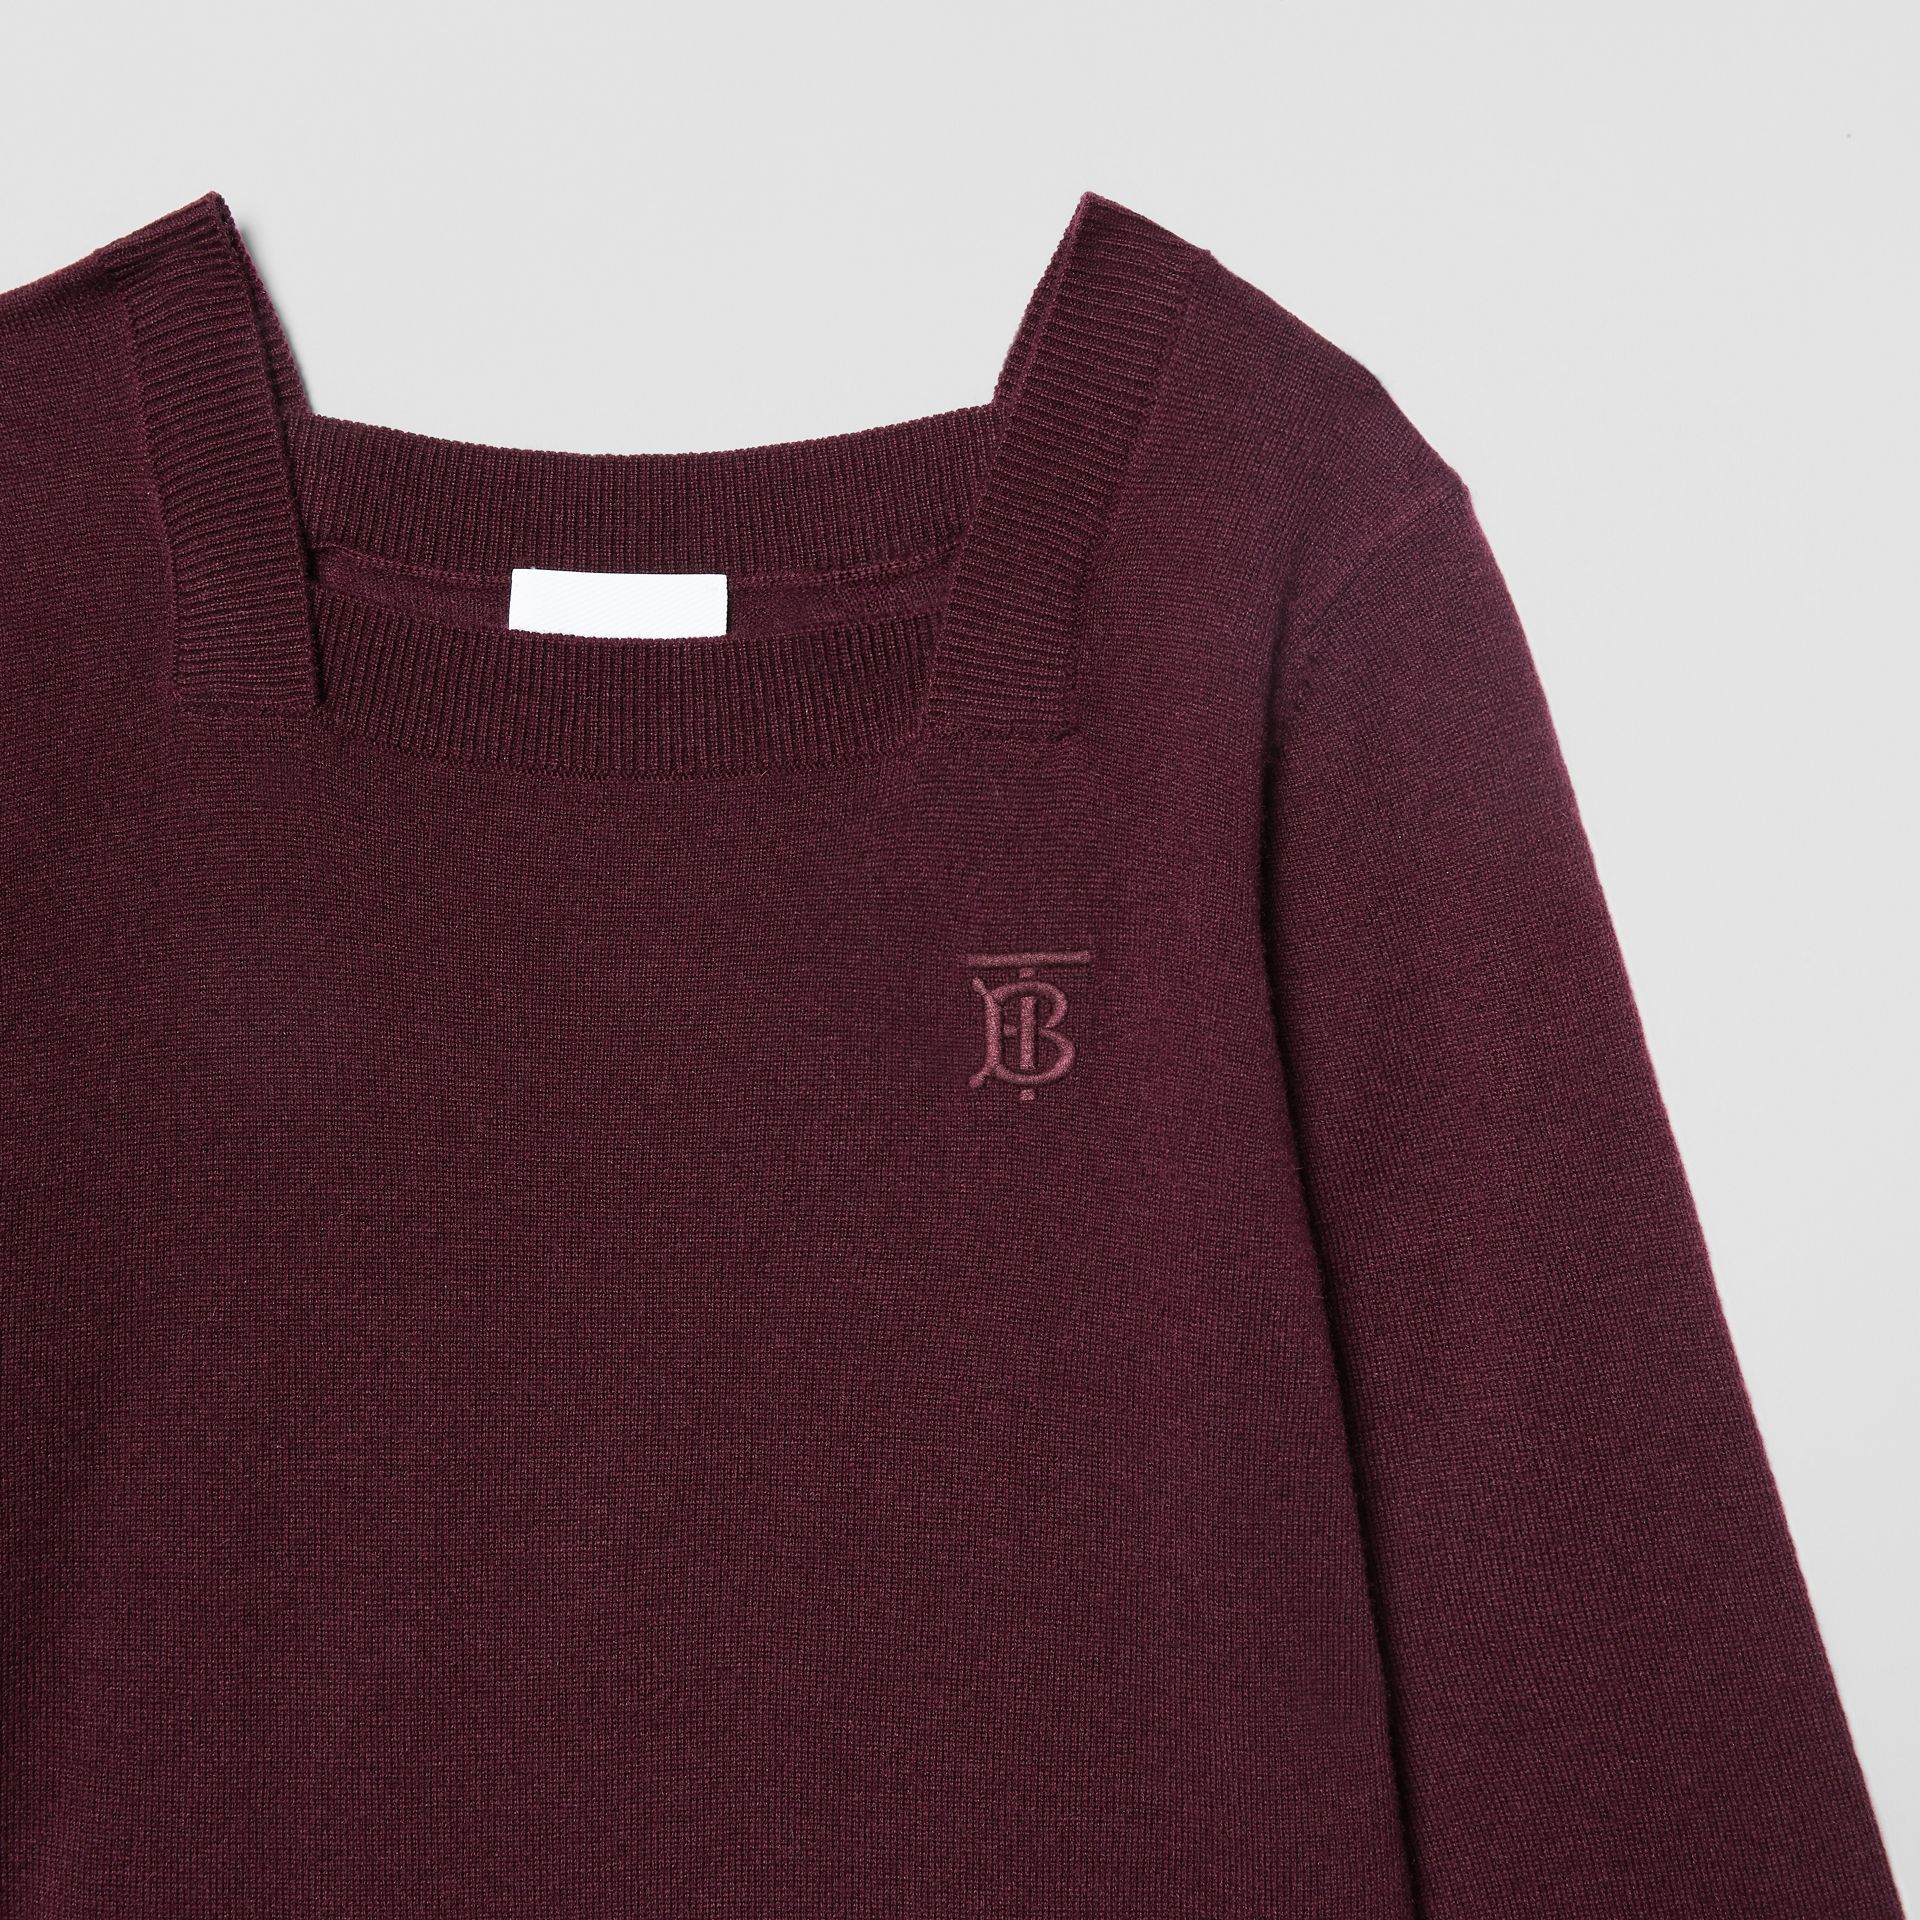 Monogram Motif Cashmere Sweater Dress in Burgundy | Burberry - gallery image 4